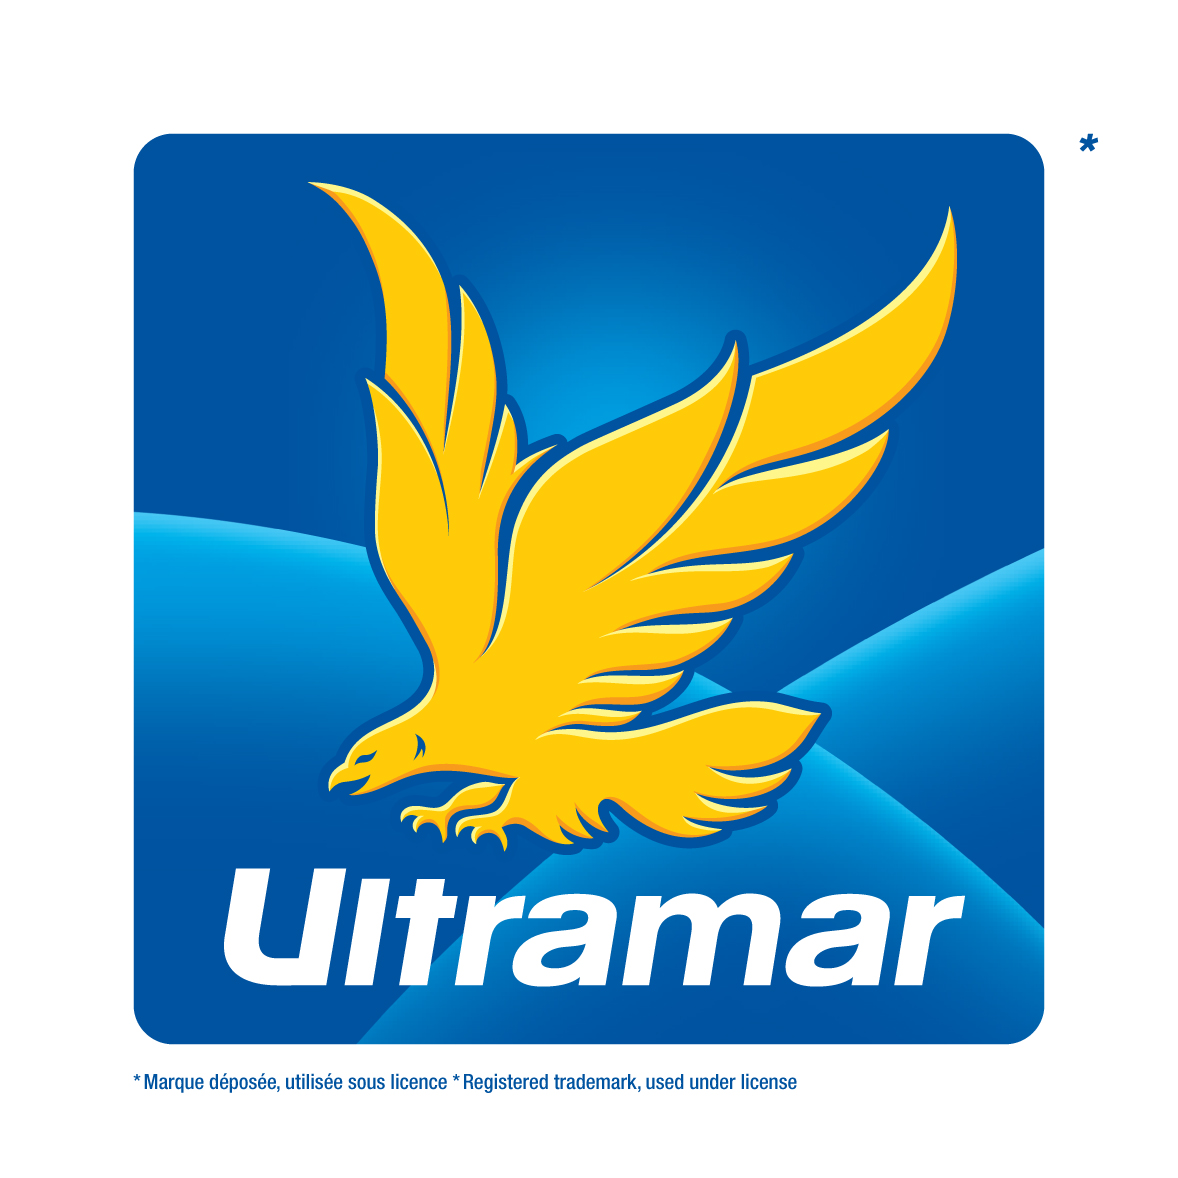 Parkland Fuel Corporation (Ultramar)'s